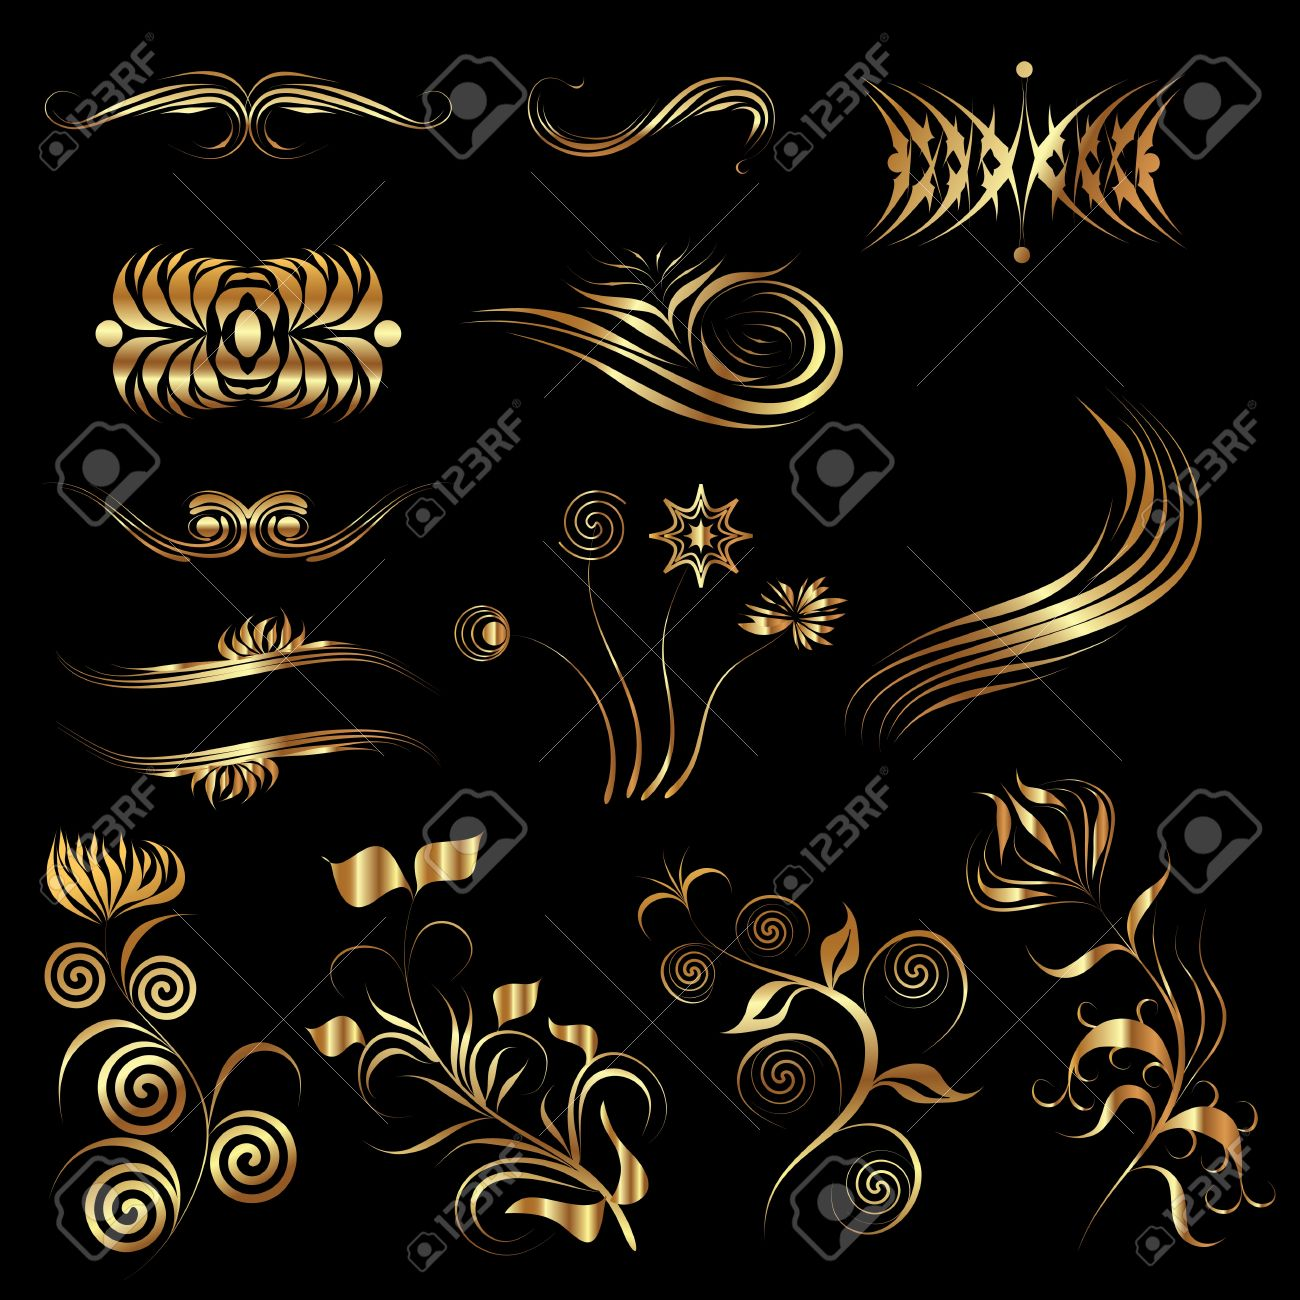 A set of vector floral design elements on a dark background Stock Vector - 11785153